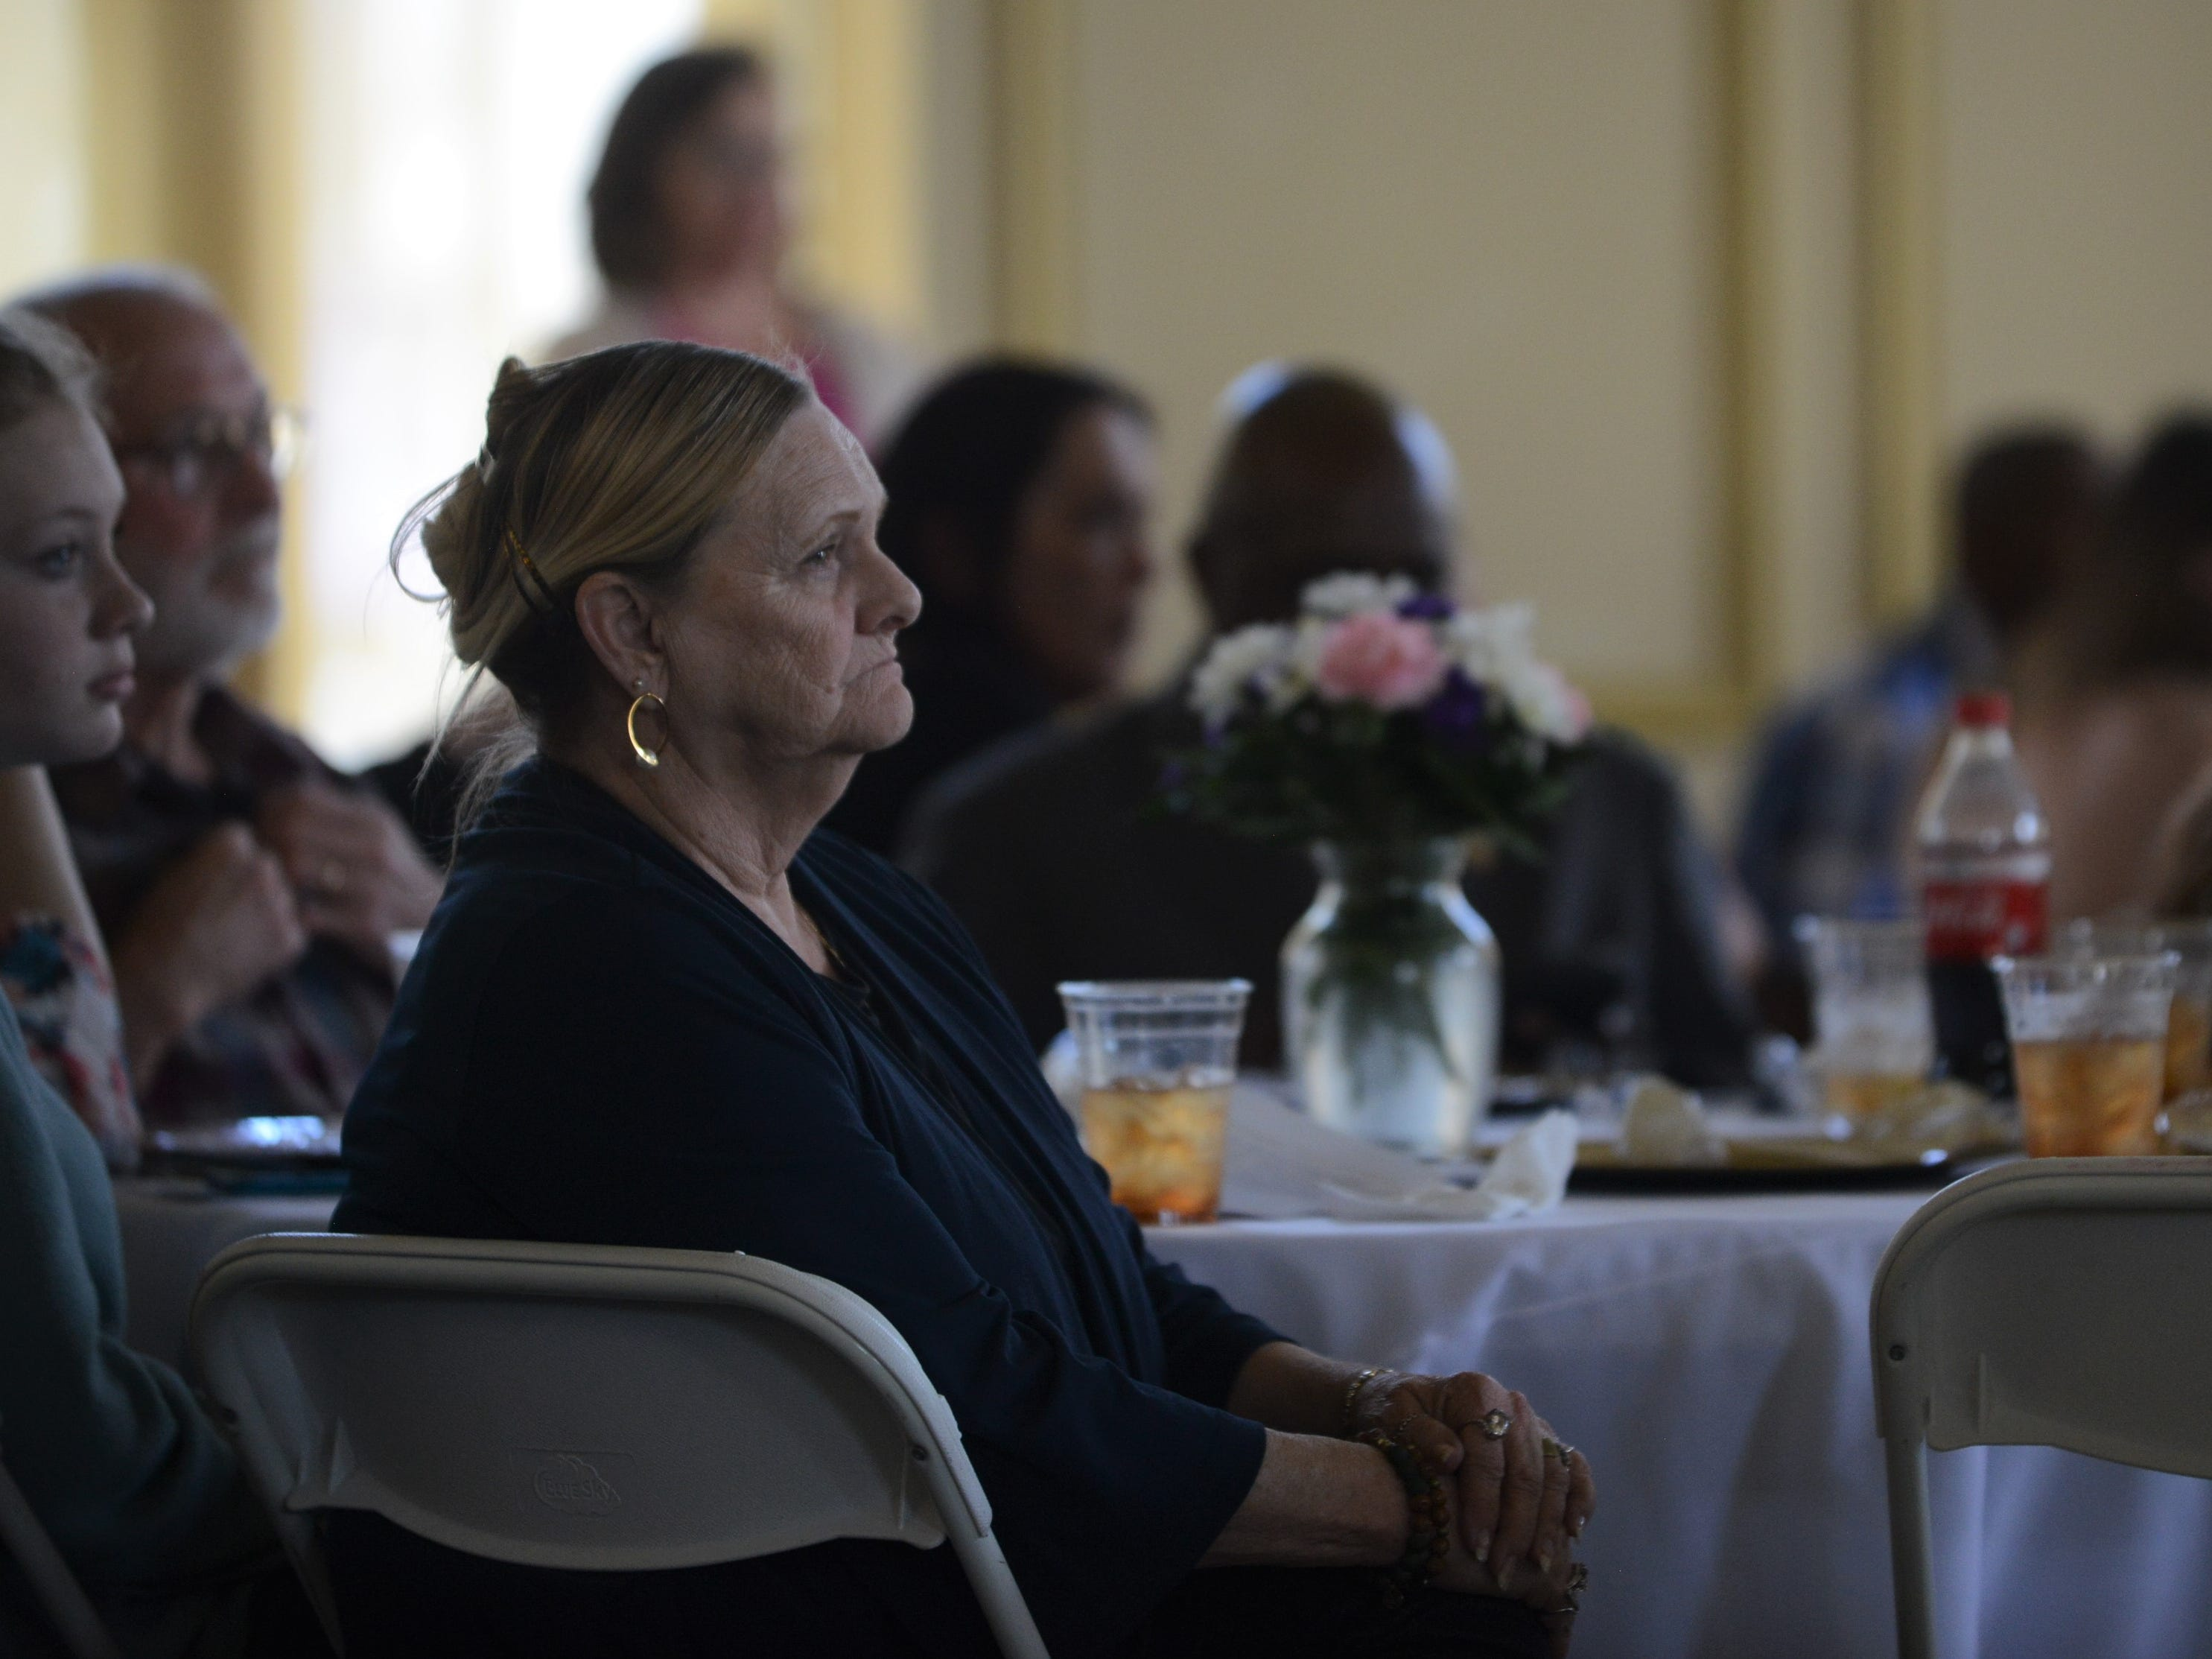 Thelma Knight tears up as she watches the testimonies of the Jackson Recovery Court graduates at the Jackson Recovery Court graduation luncheon at the New Southern Hotel on Wednesday, April 3. Her son, Tony Knight, and daughter-in-law, Deanna Knight, graduated from the program Wednesday.